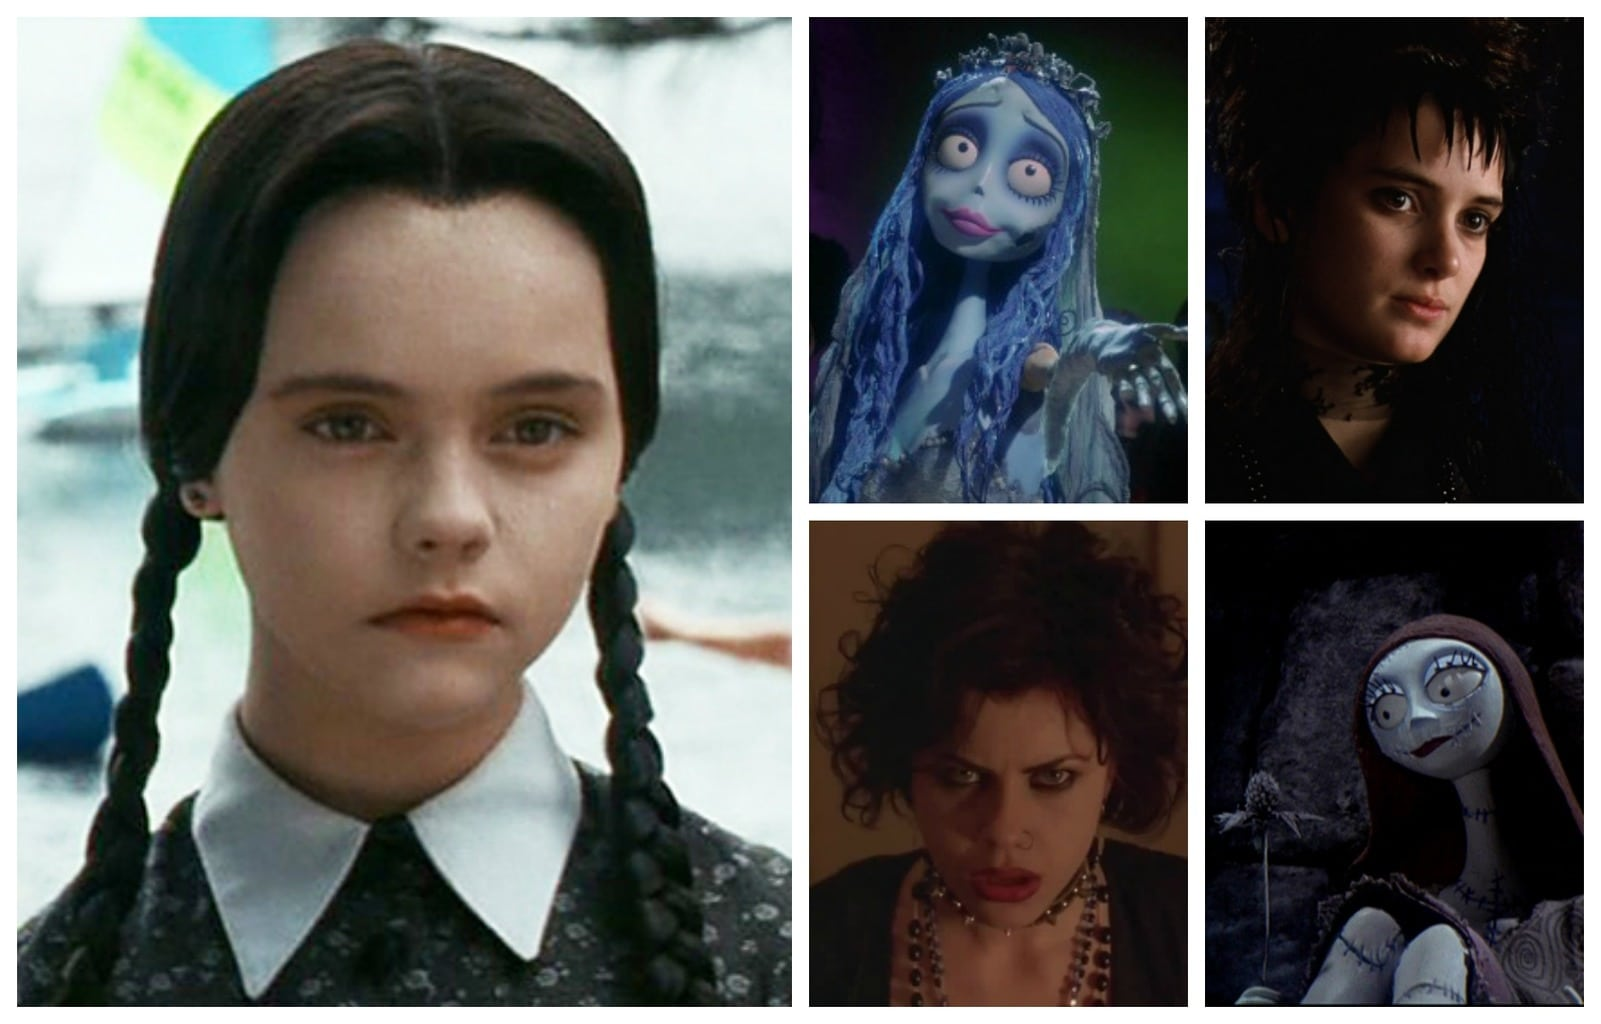 5 Fictional Goth Girls to Inspire Your Halloween Look